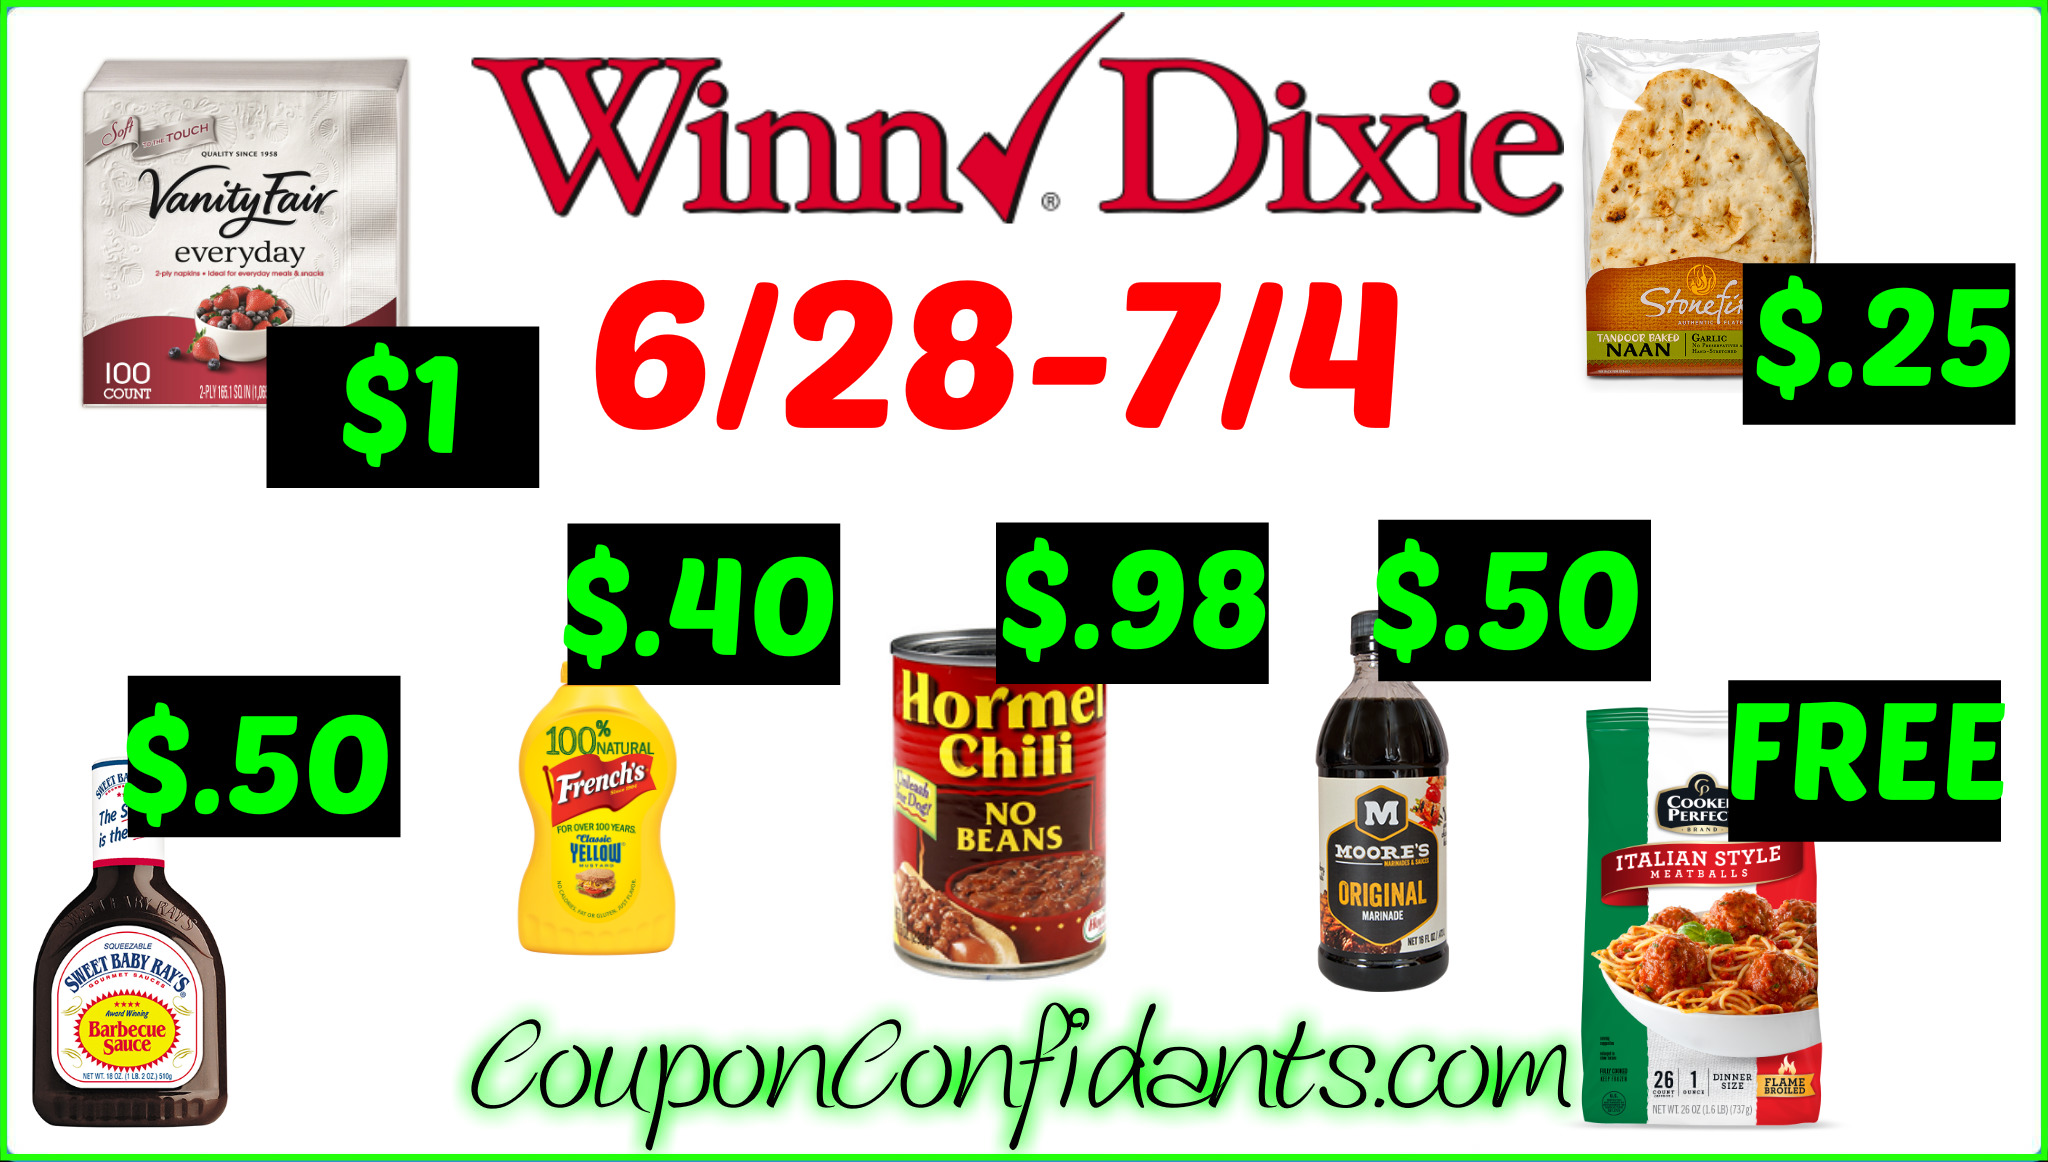 Winn Dixie is a neighborhood-style grocery store that carries all the essential groceries and features in-store bakery services, a wonderful deli section, and sells many kosher foods including bakery, beverages, condiments, dairies, and frozen among other types.